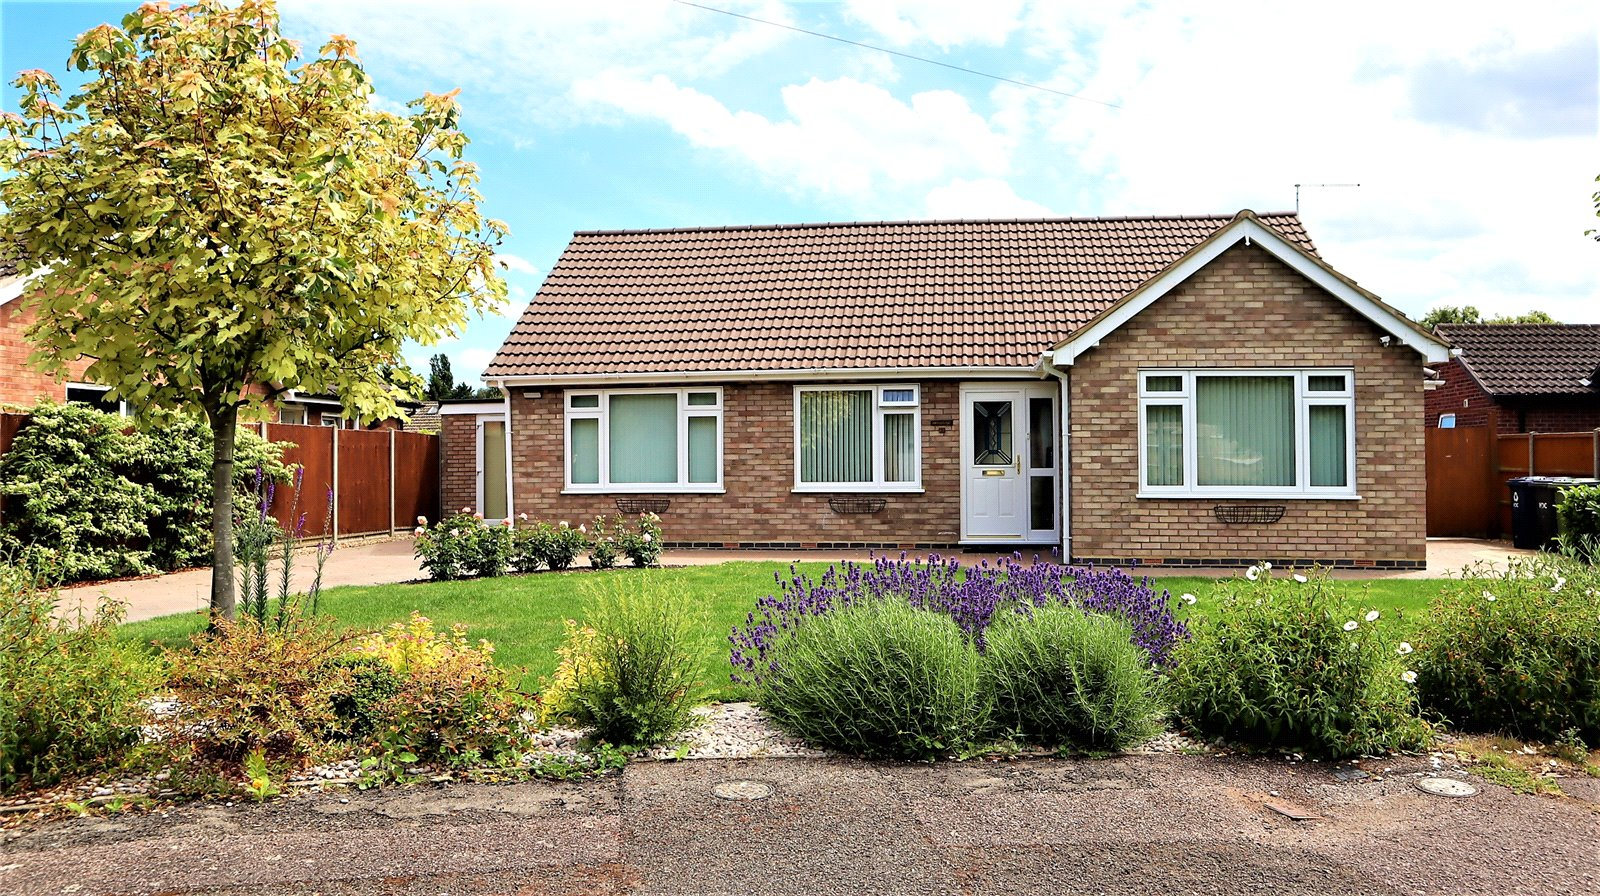 3 bed bungalow for sale in Eaton Socon, PE19 8HL - Property Image 1